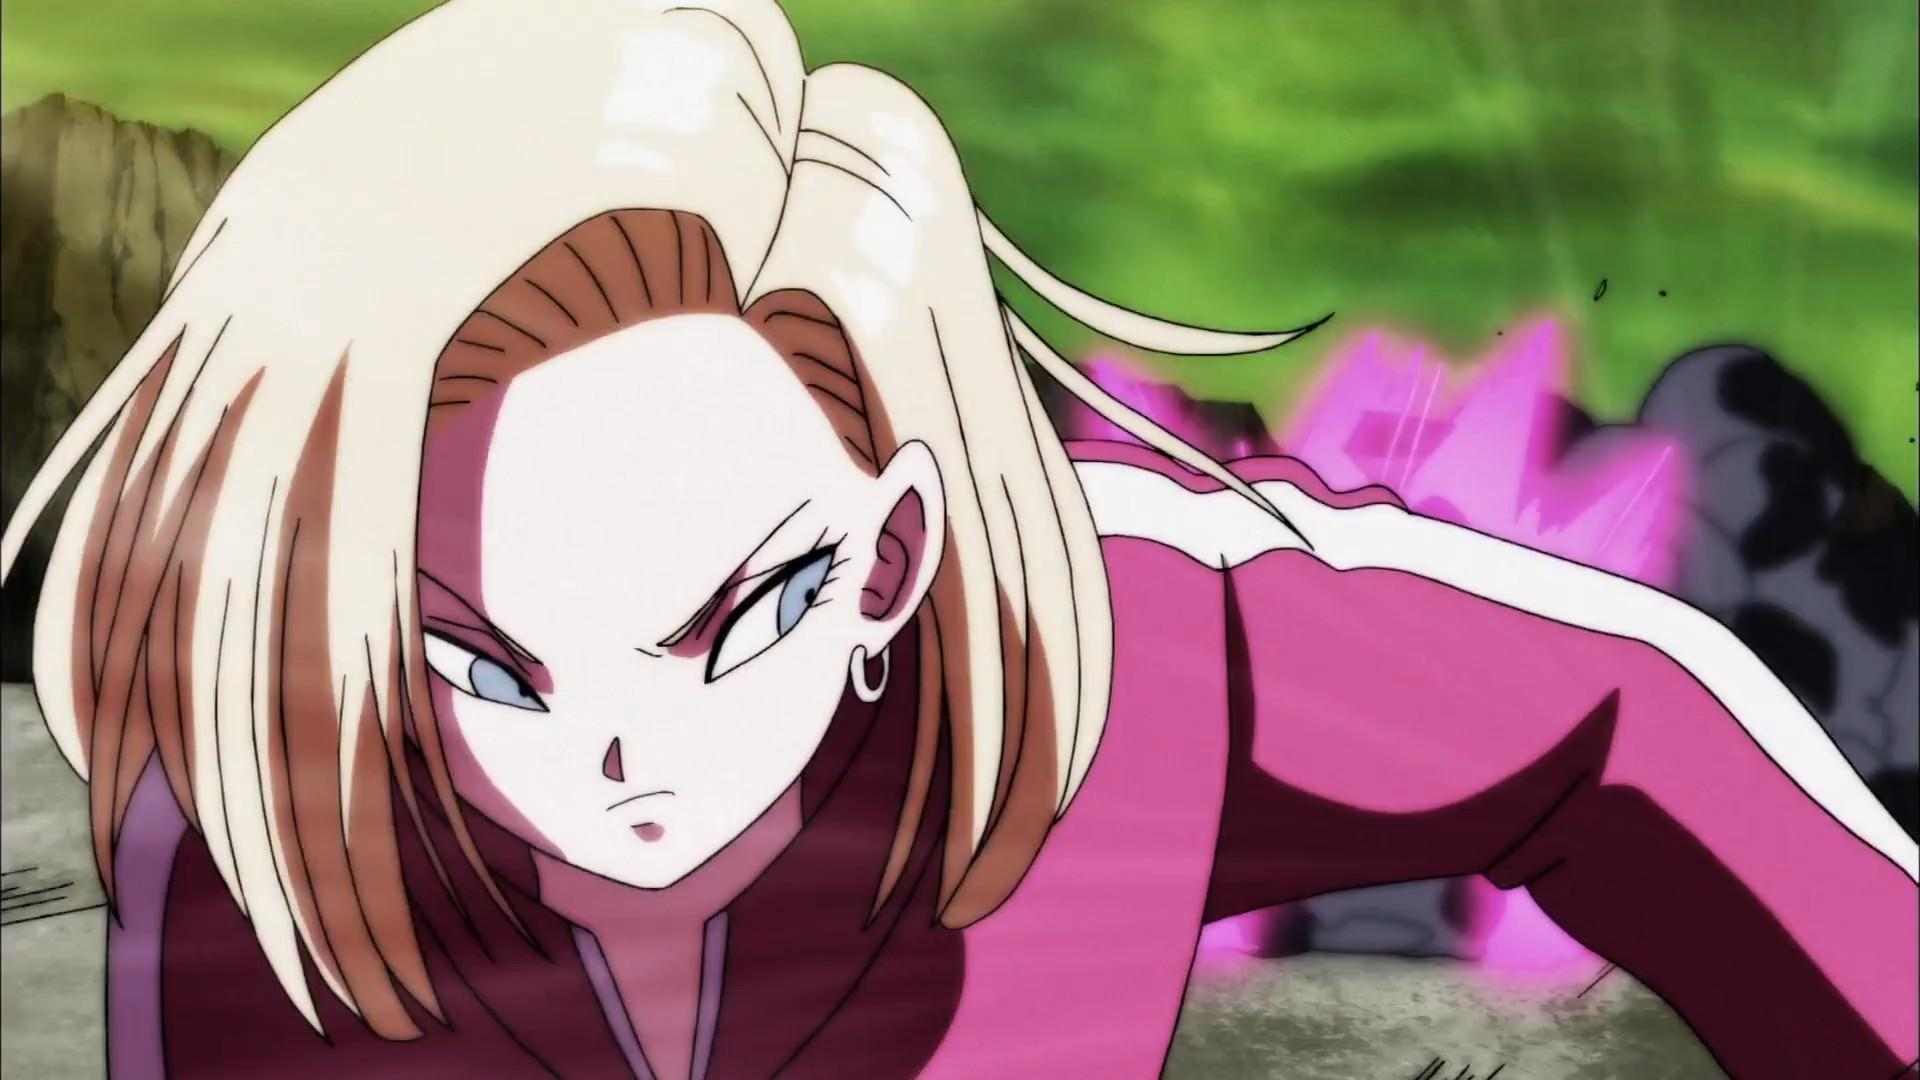 Dbz Android 18 1920x1080 Wallpapers Wallpaper Cave